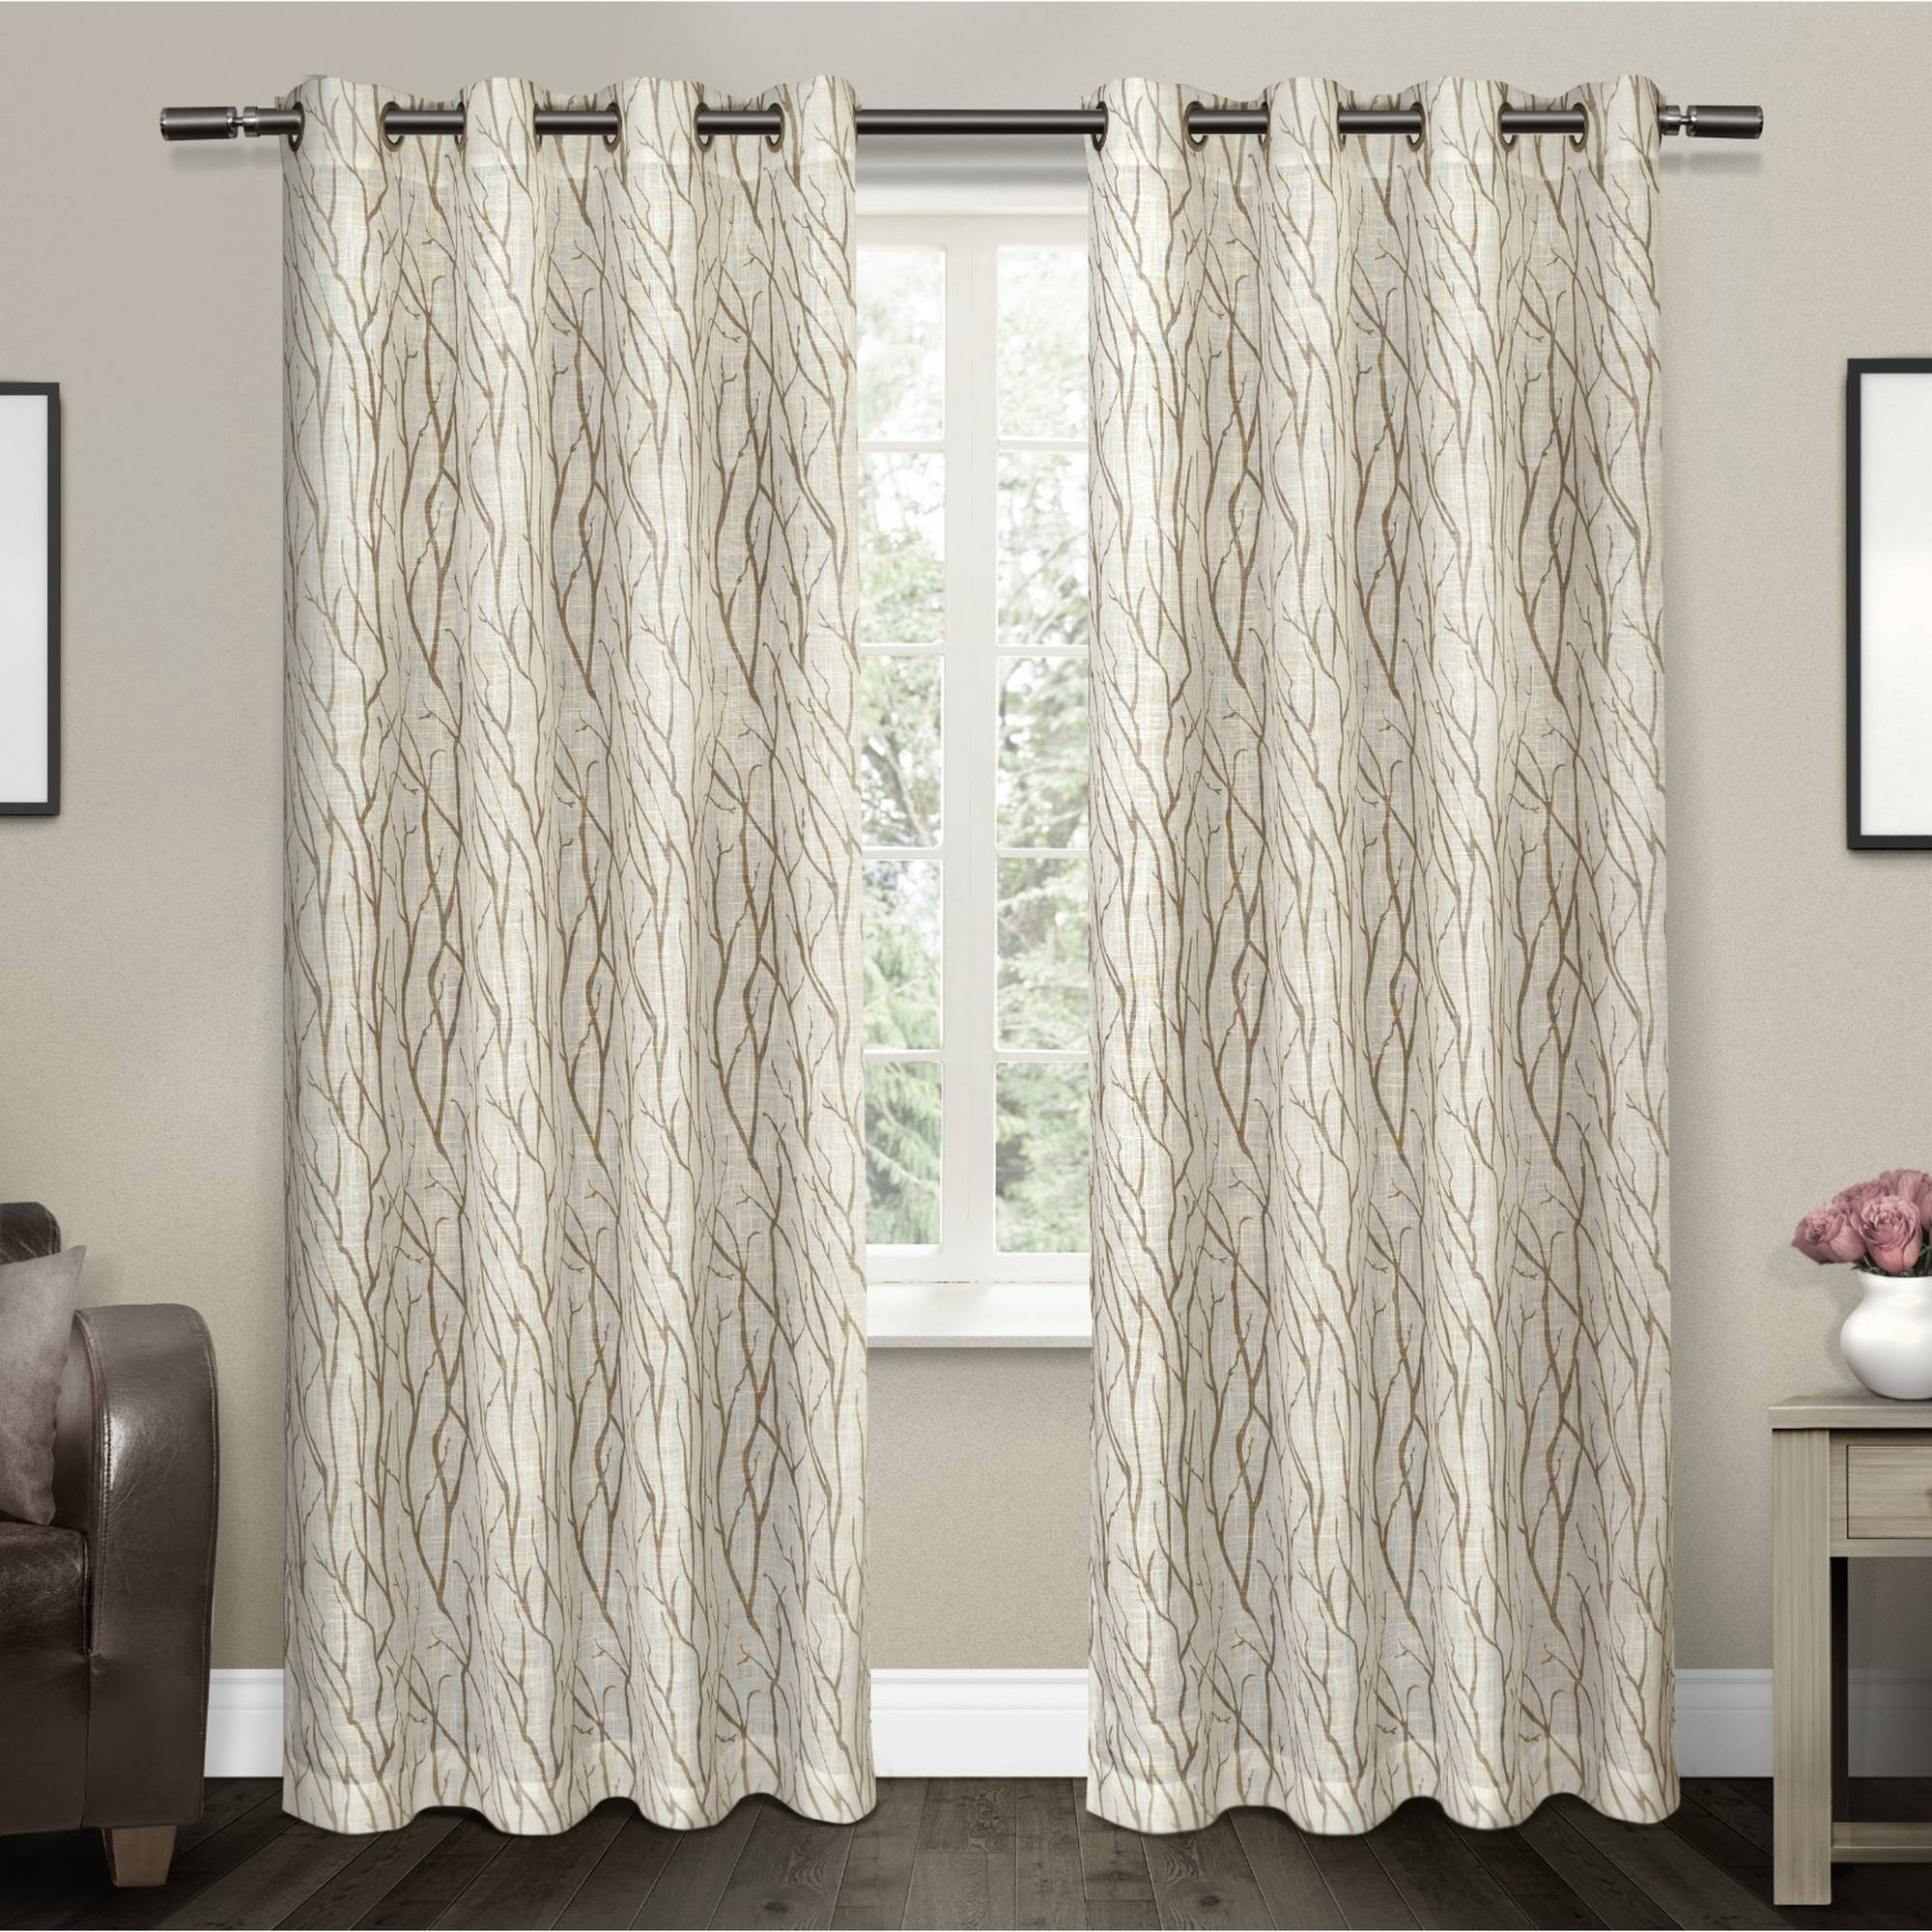 Linen Curtains Throughout Textured Linen Curtains (Image 9 of 15)